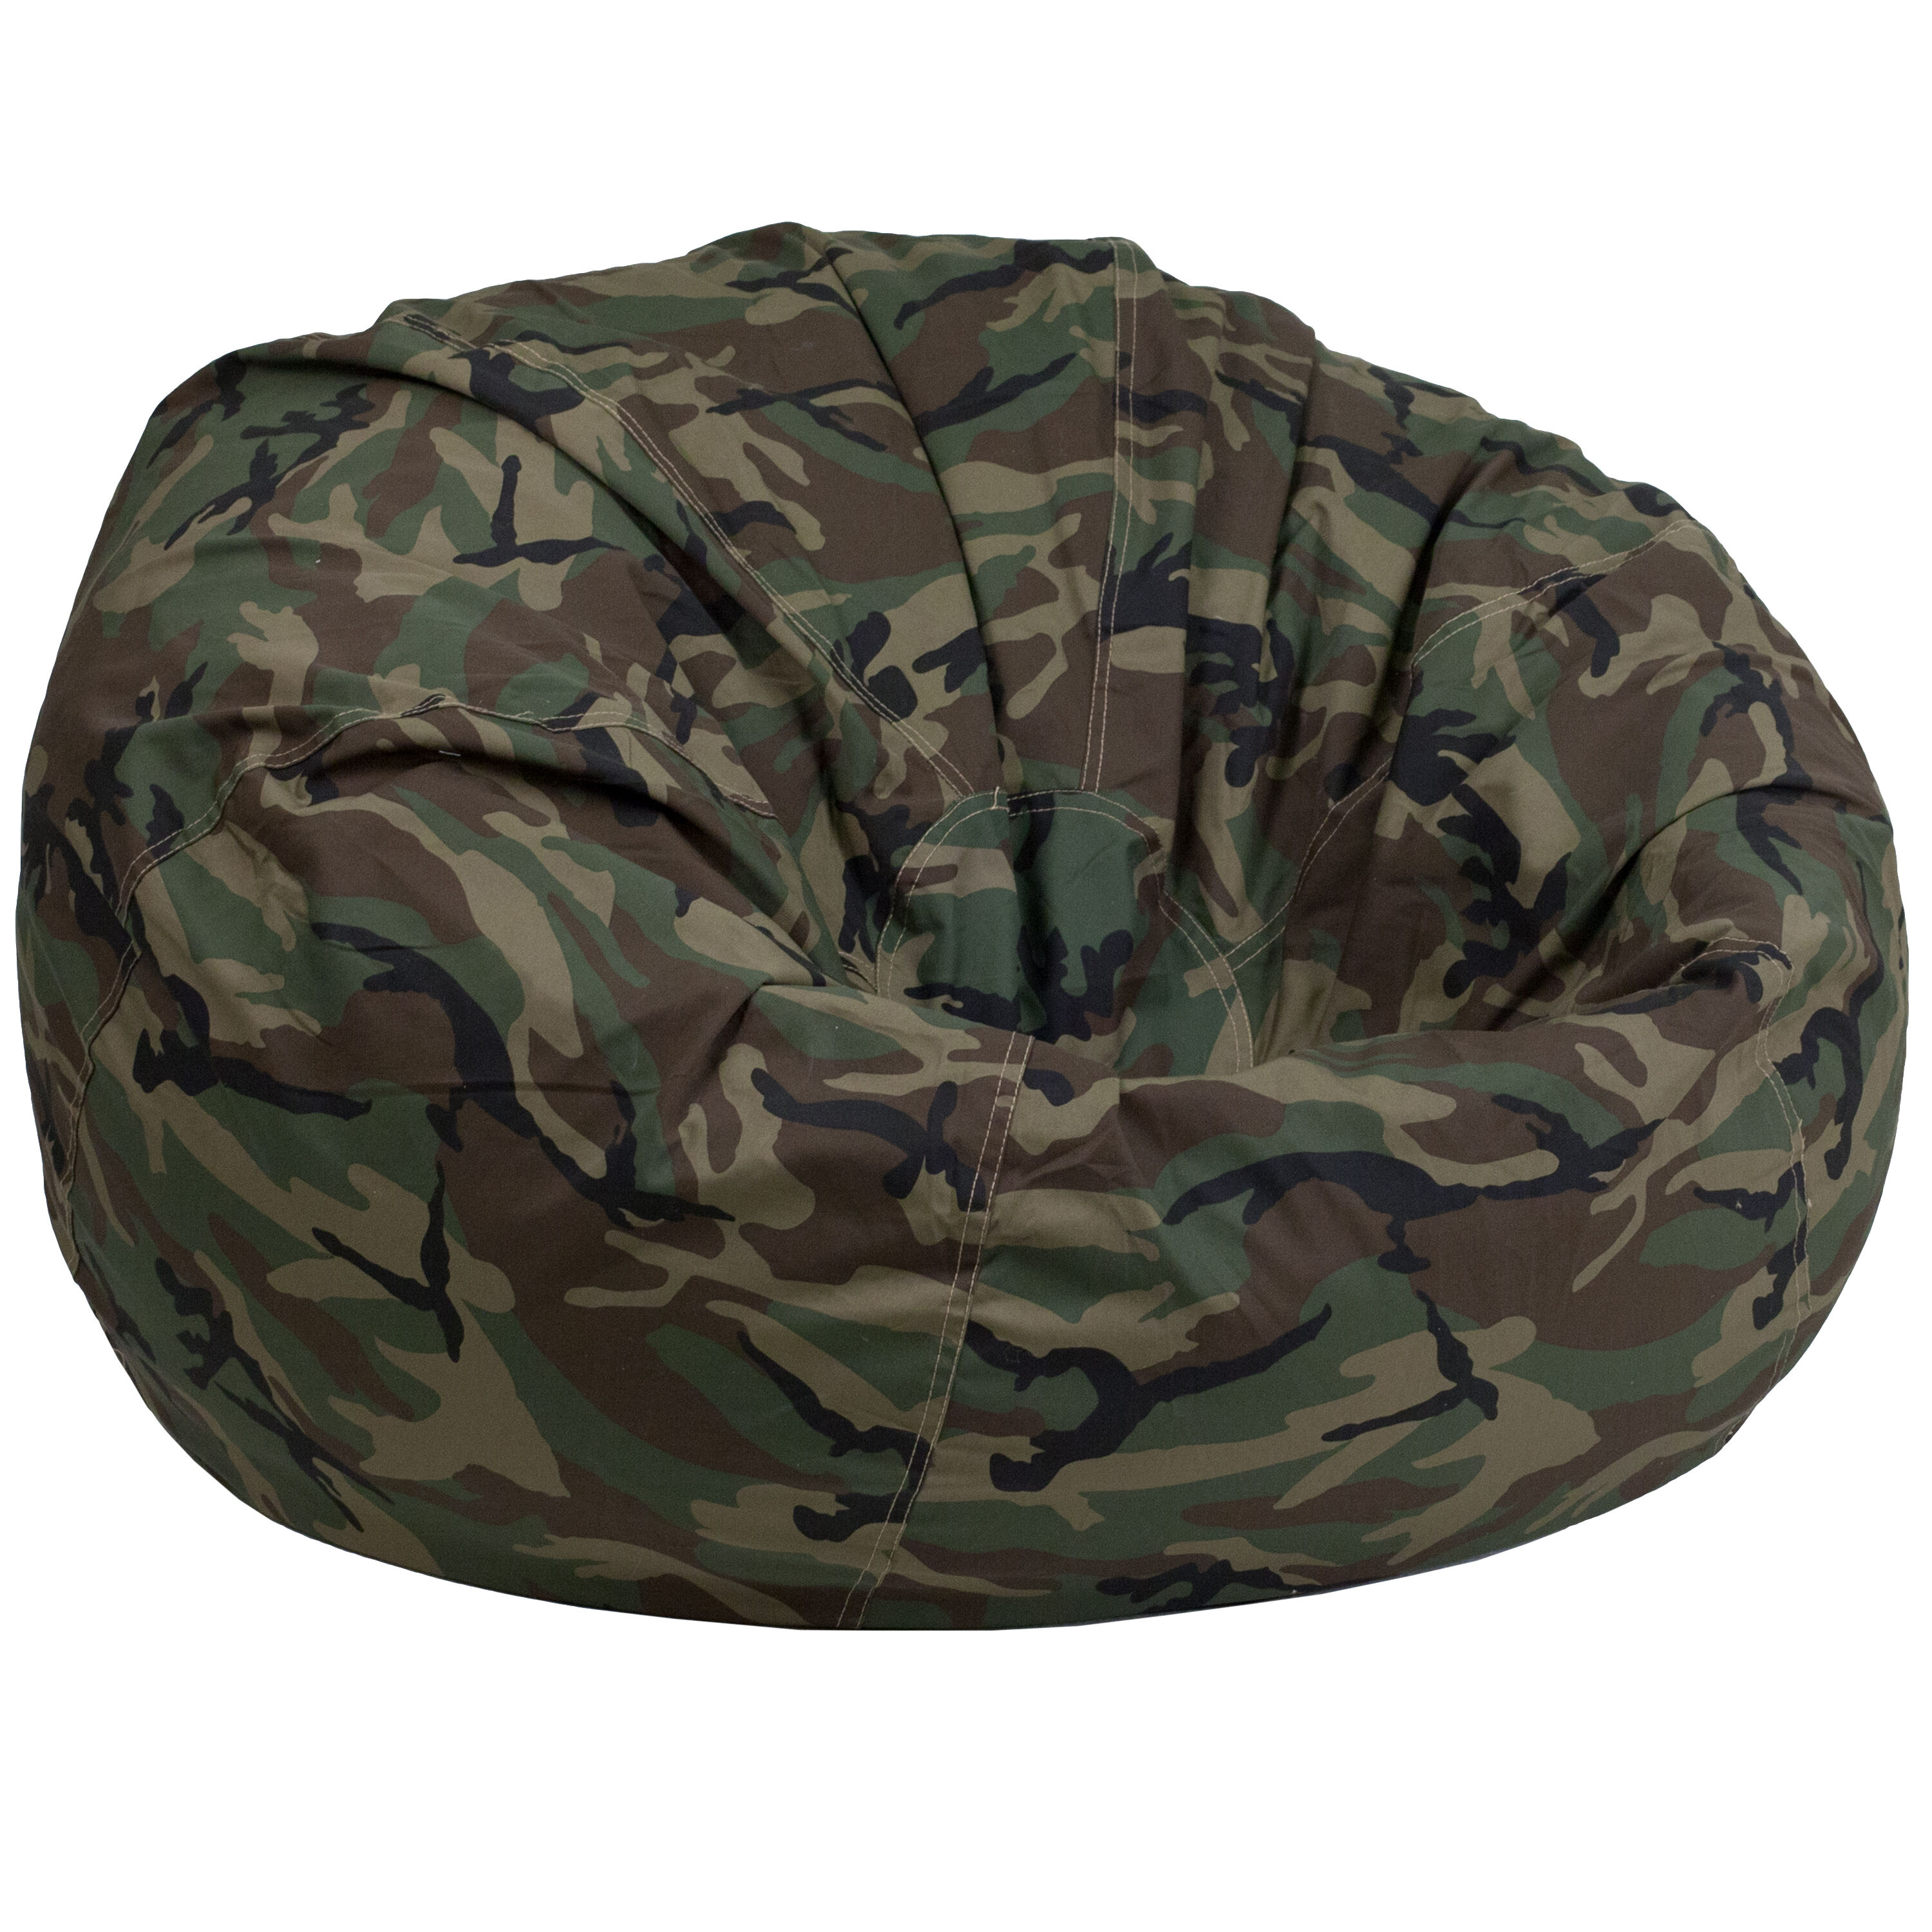 Where Can I Buy A Bean Bag Chair Oversized Camouflage Kids Bean Bag Chair